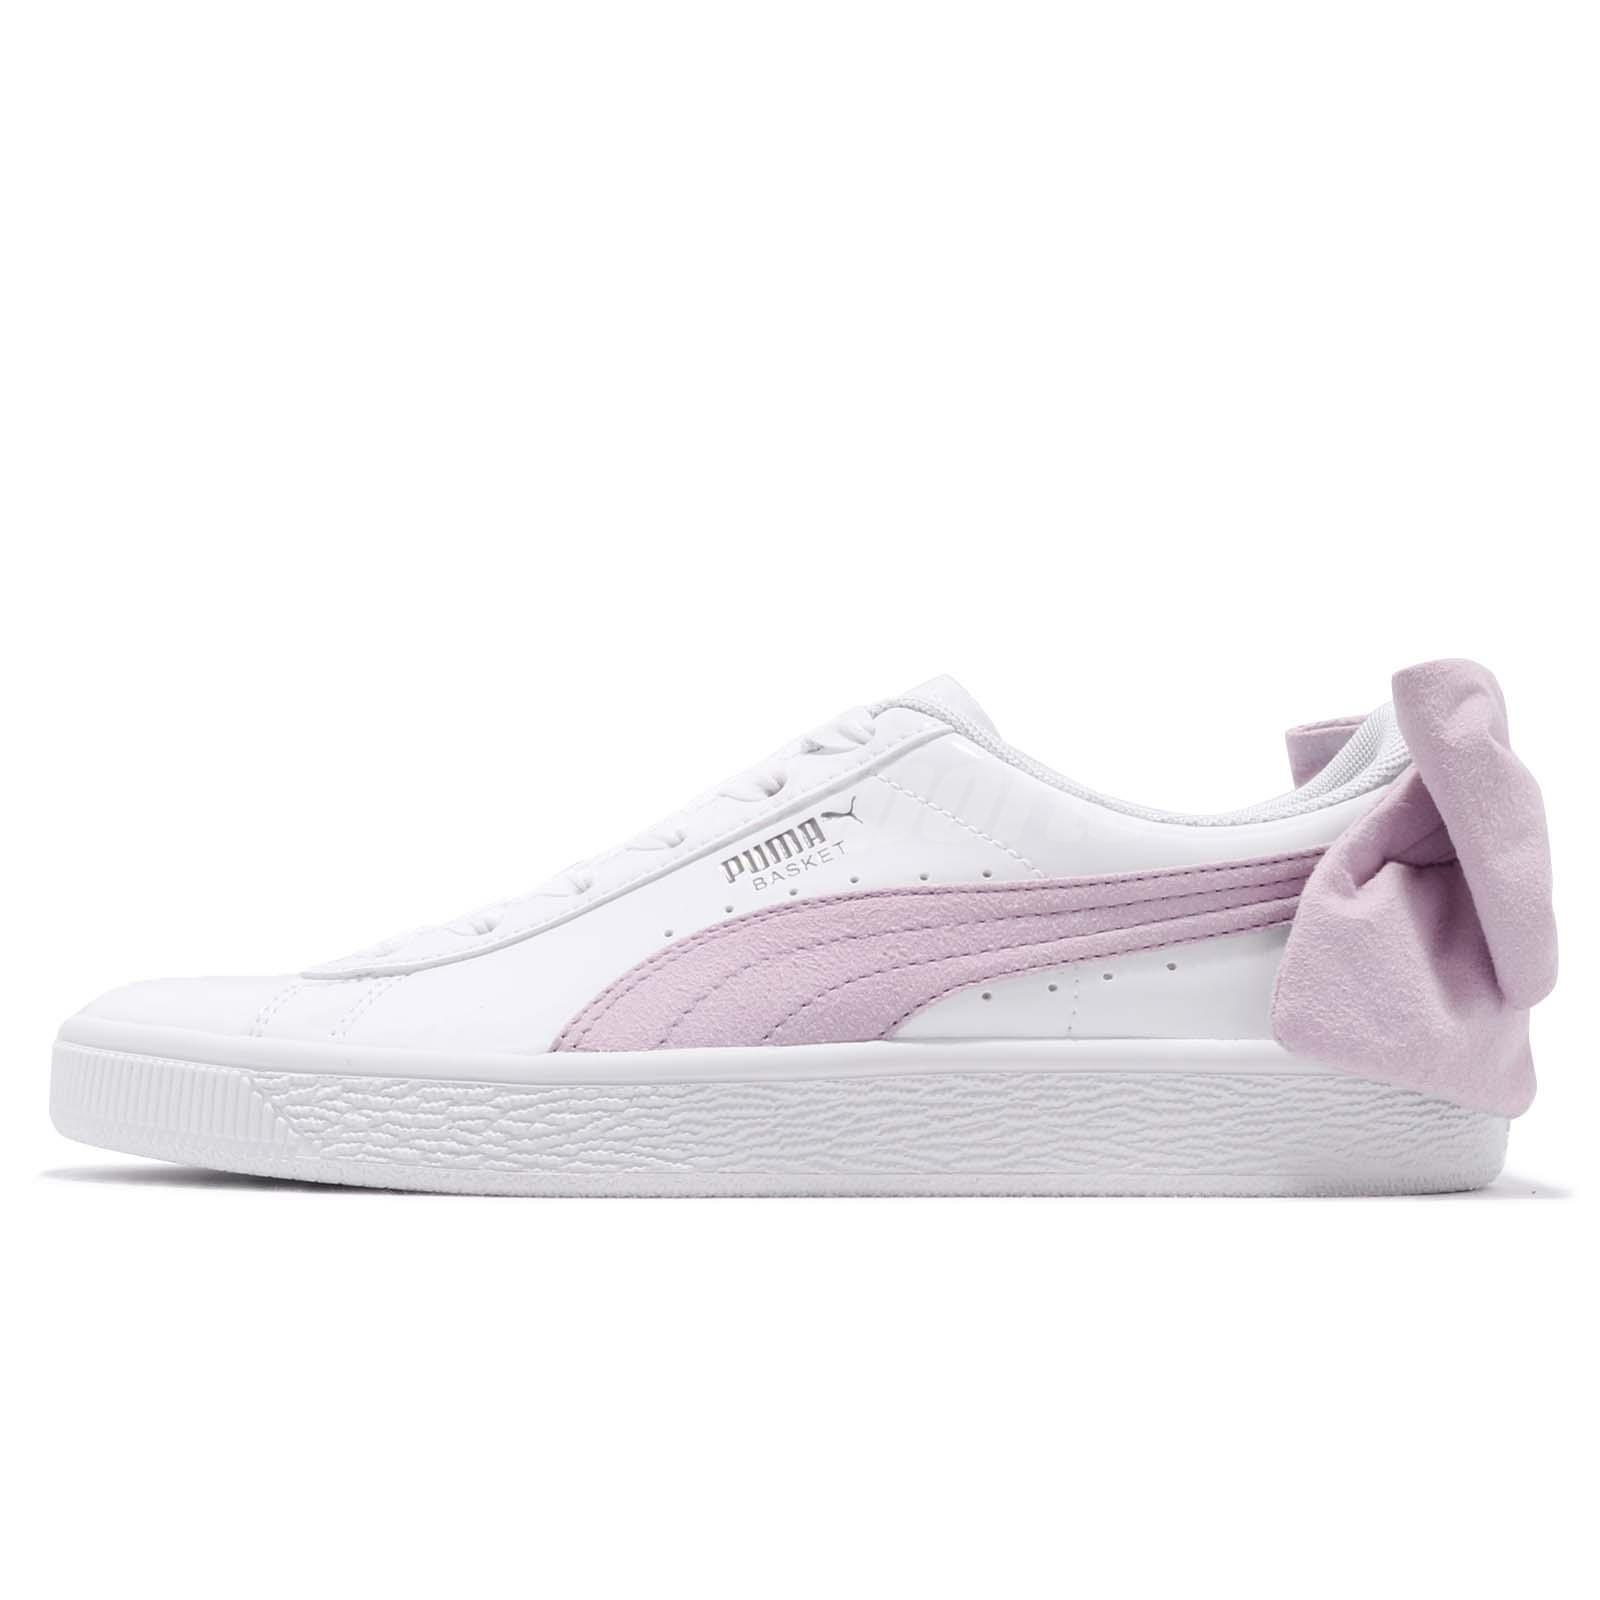 Puma Basket Bow SB Wns White Winsome Orchid Women Casual Shoes Sneaker  367353-02 db491f905